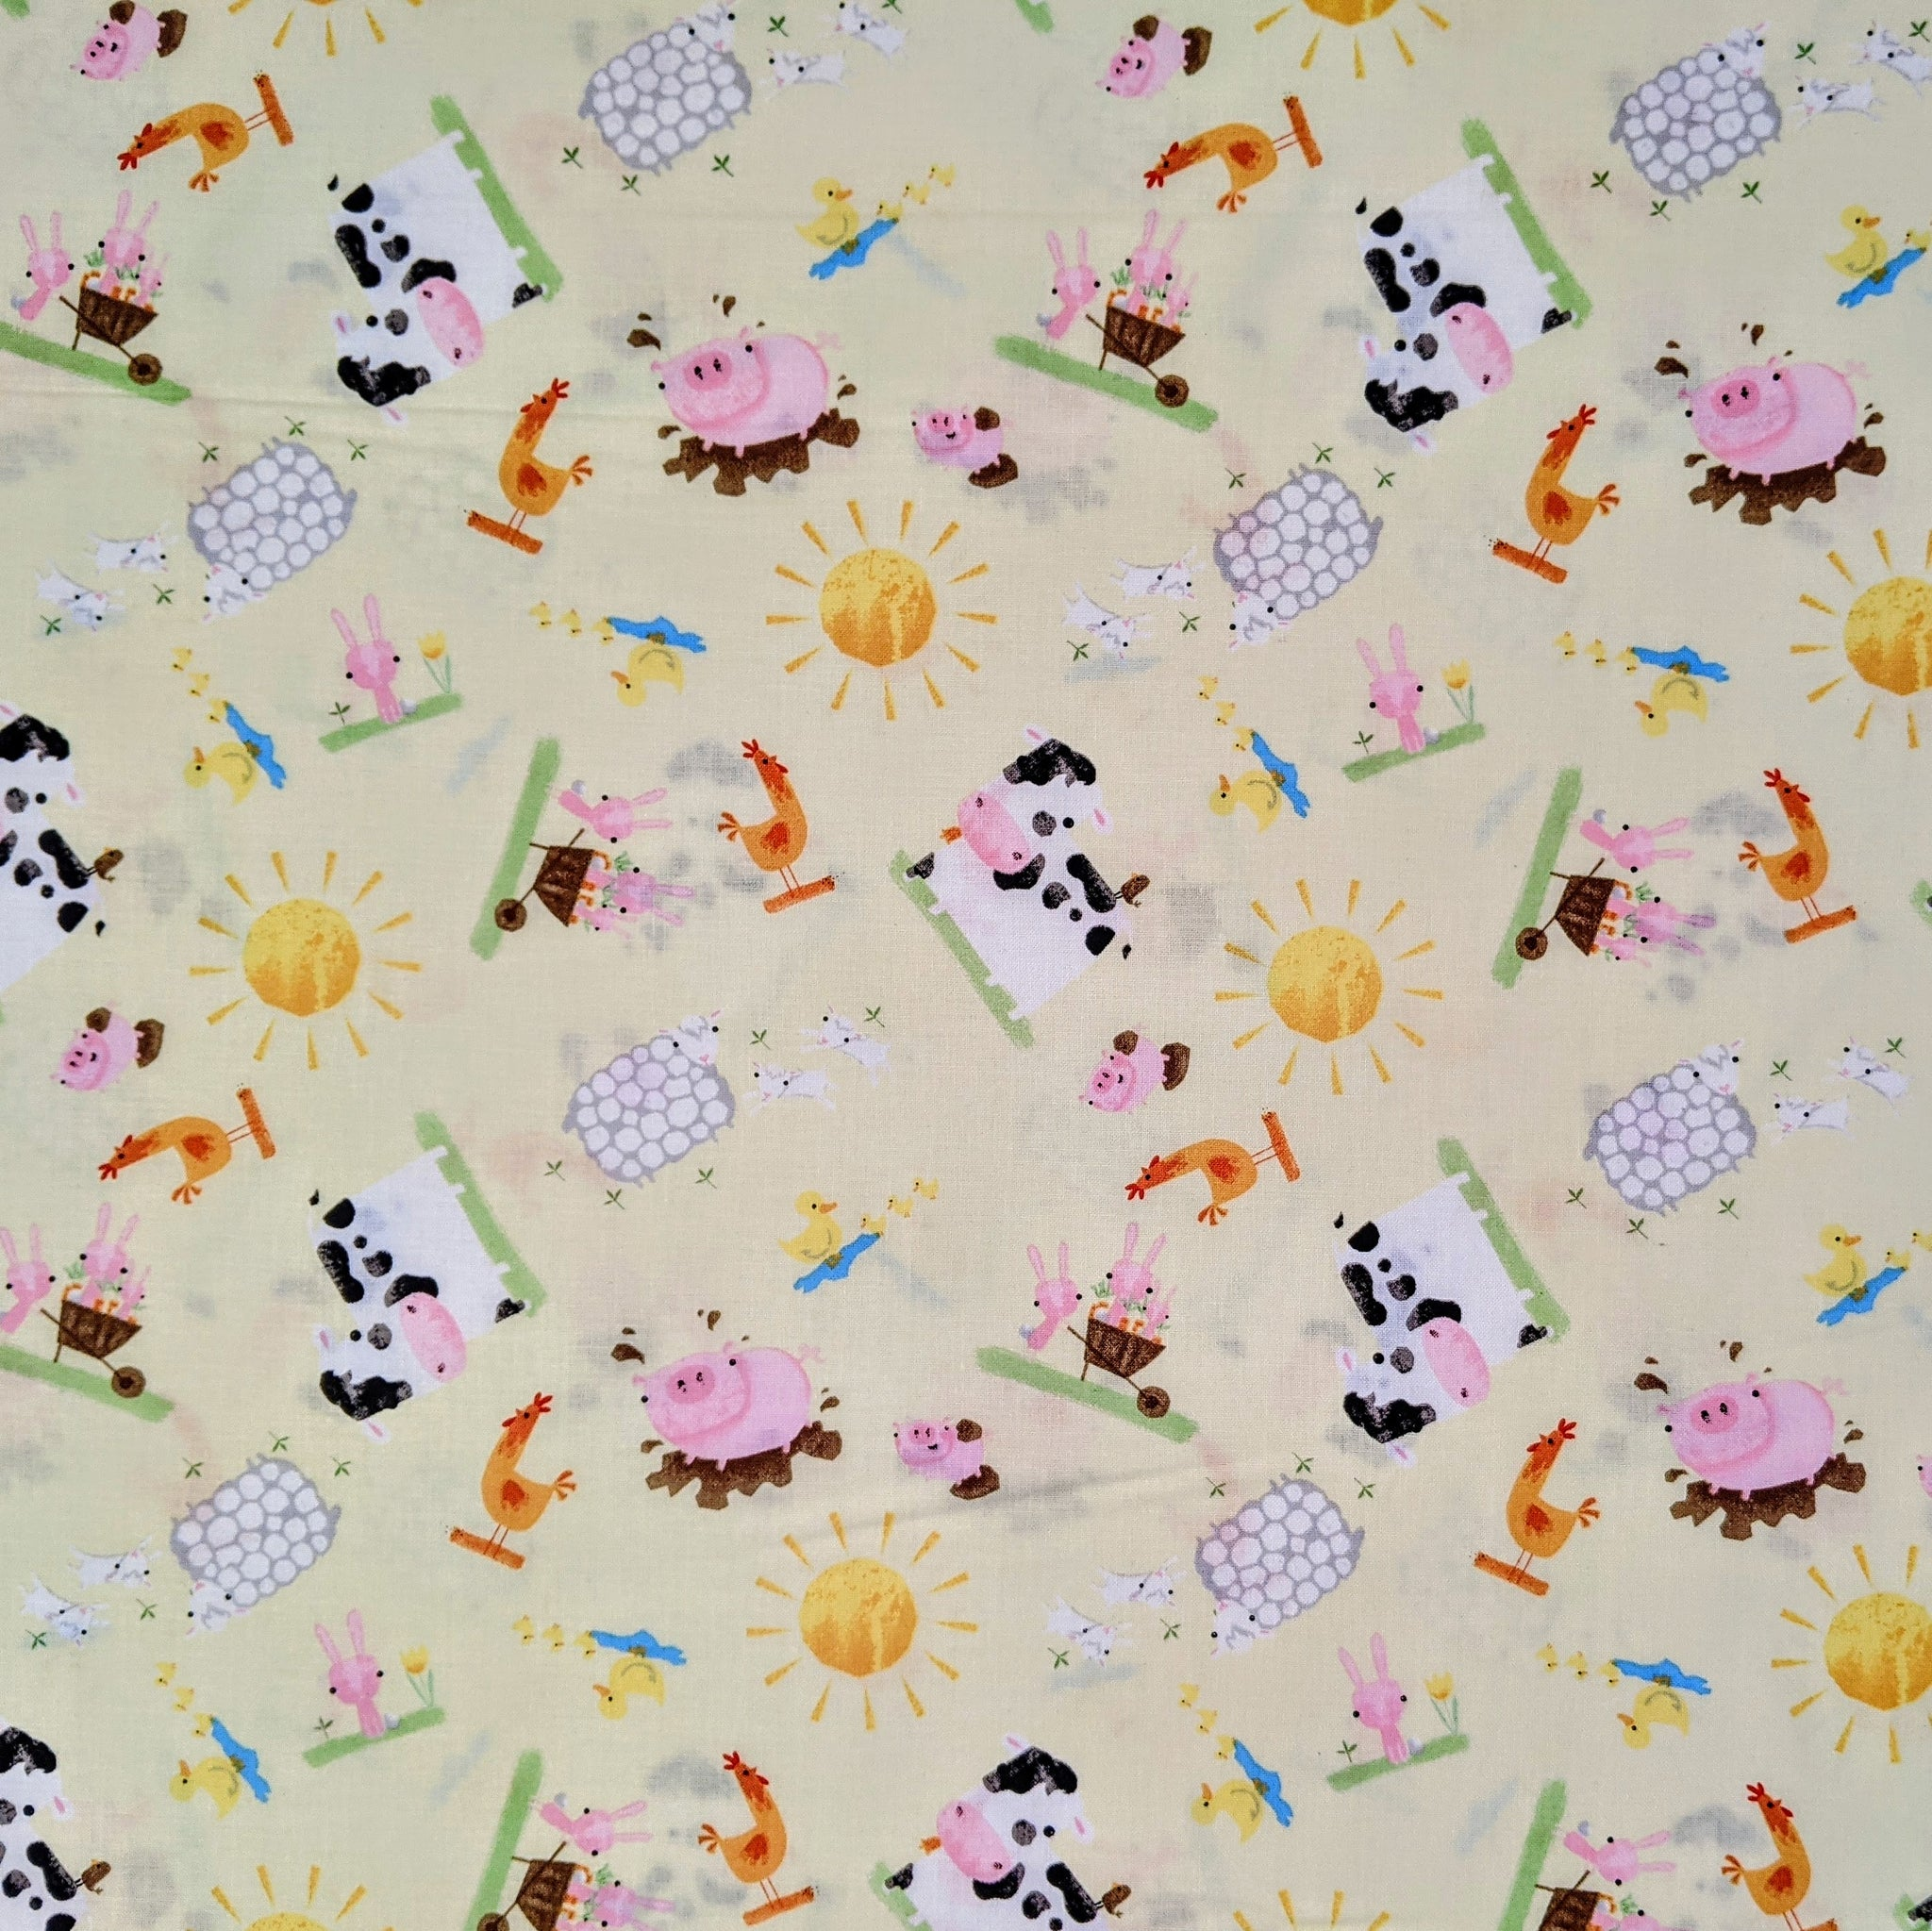 Farm animals on yellow - 100% cotton - Playful farm collection - Craft Cotton co